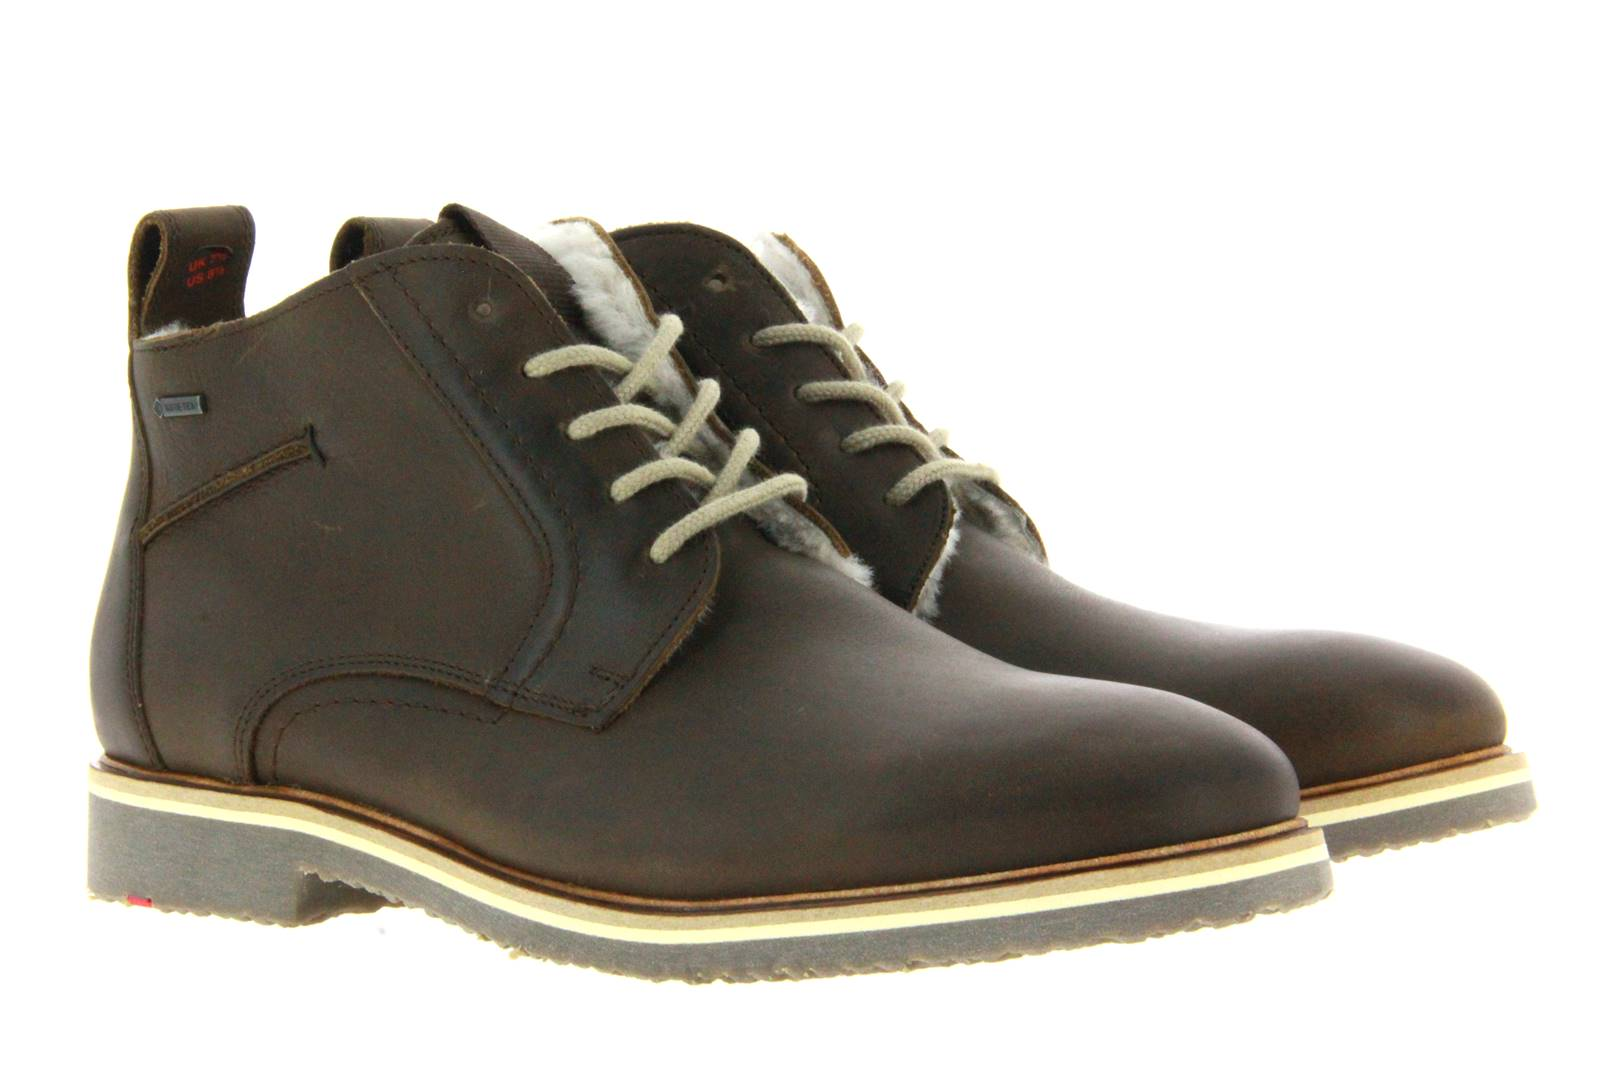 Lloyd ankle boots lined VISBY PANAMA HYDRO TUNDRA